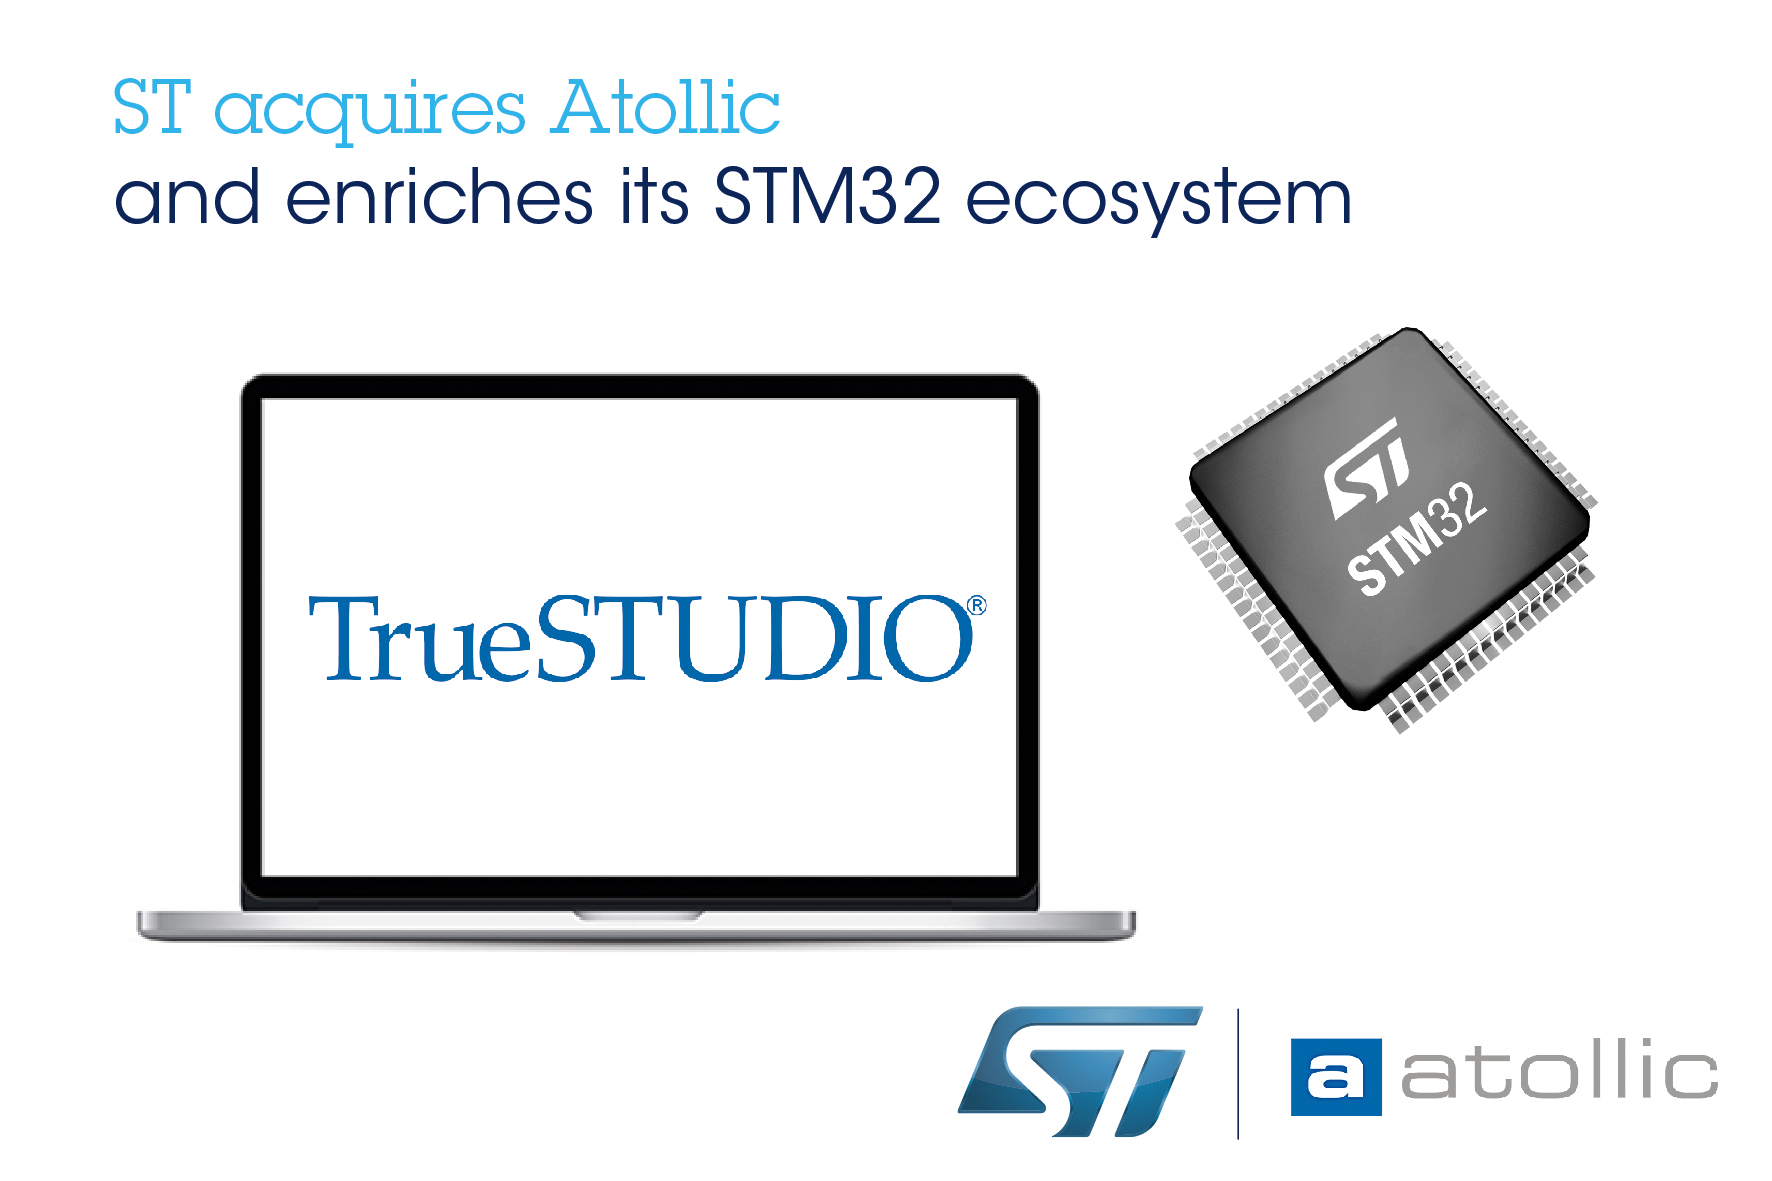 Stmicroelectronics Acquires Atollic An Embedded Systems Company Introduction To The World Of Microcontrollers Pic Engineering Integrated Development Environments For Arm Core Based